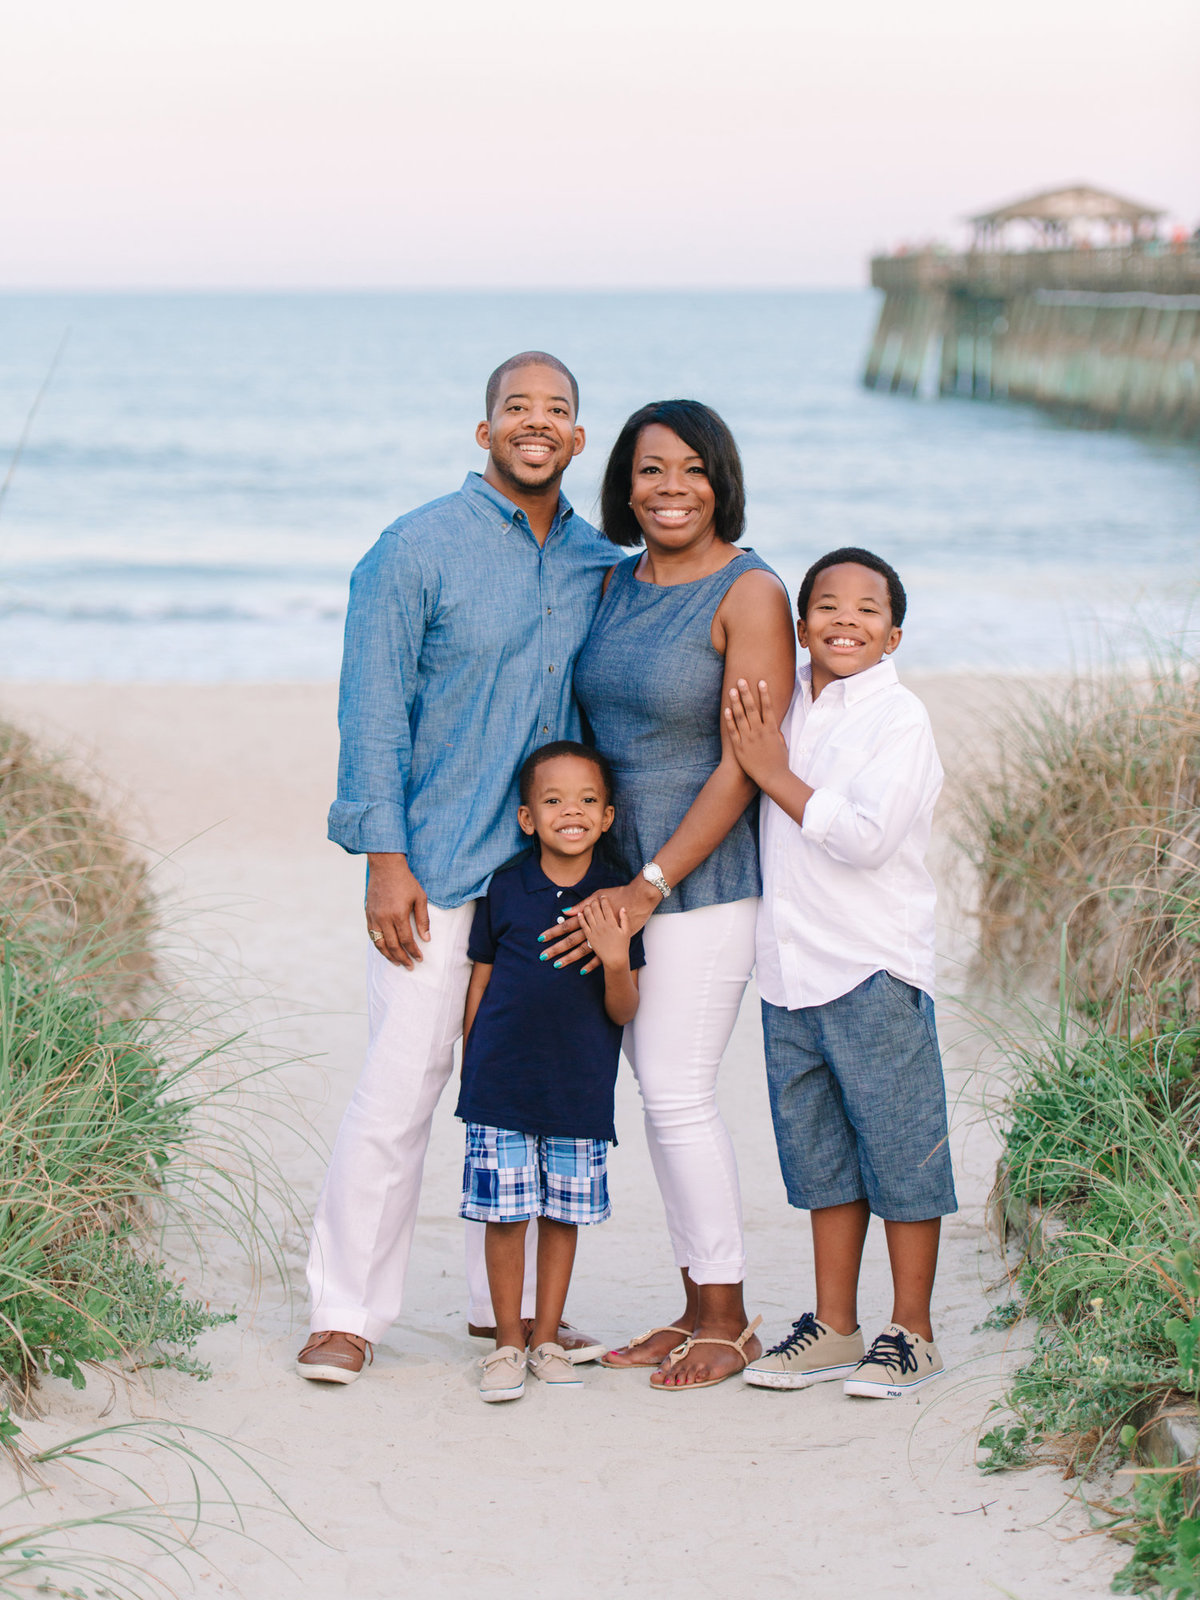 Family Pictures Myrtle Beach Photography Ideas What To Wear Your Session